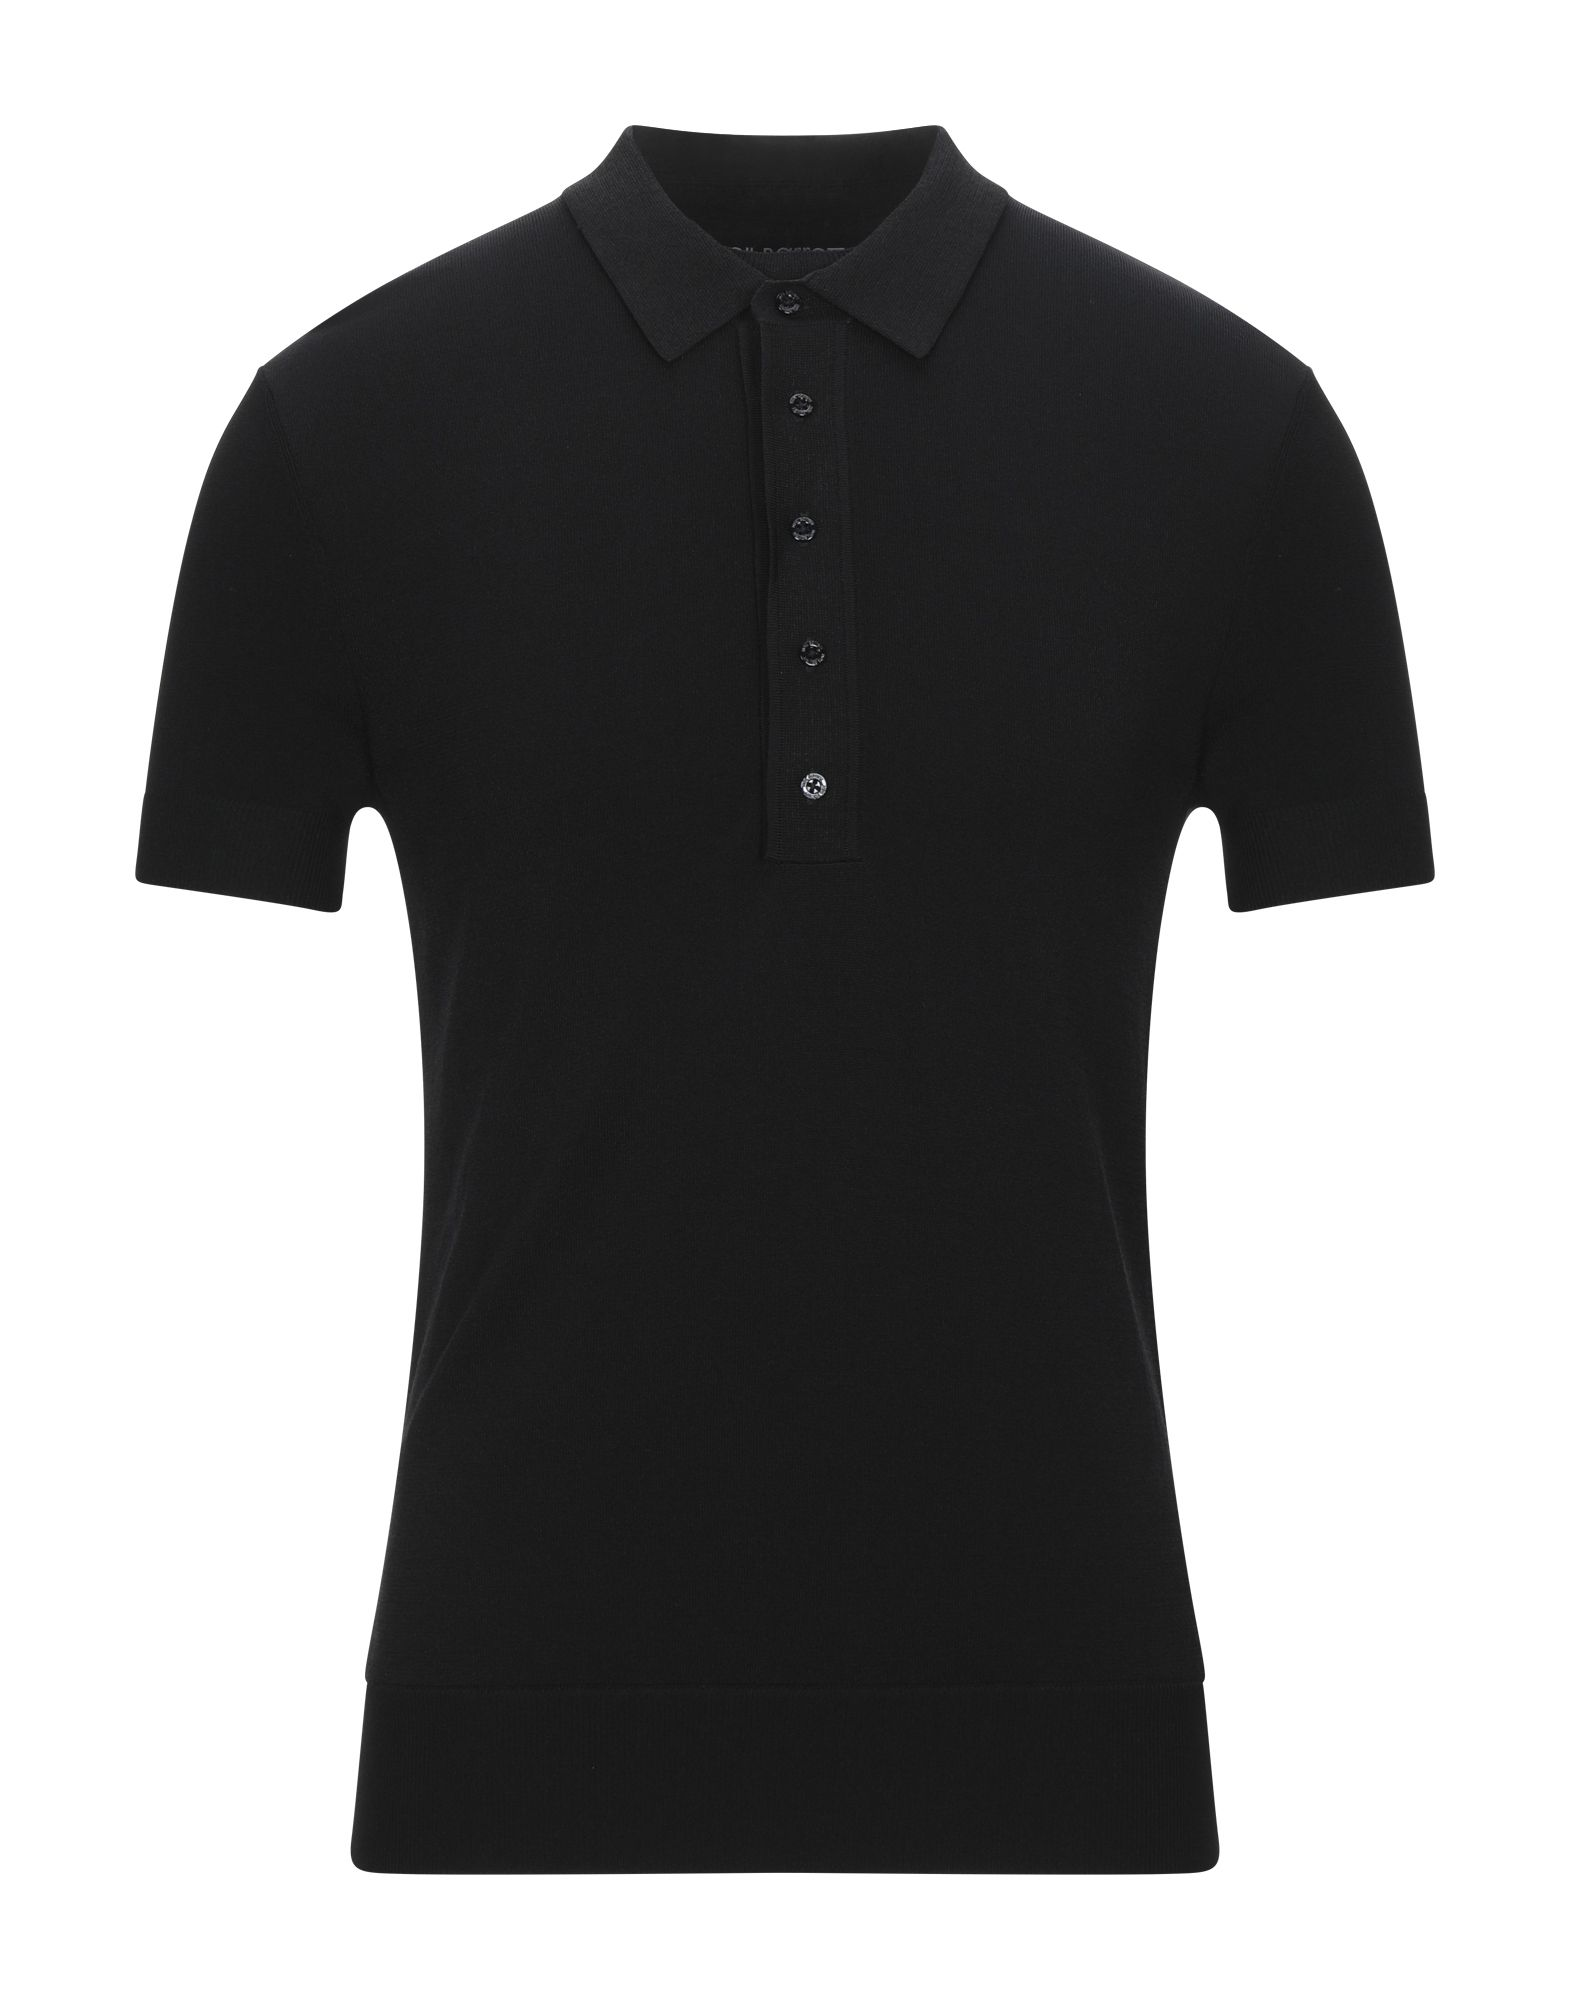 NEIL BARRETT Polo shirts. jersey, no appliqués, basic solid color, polo collar, short sleeves, no pockets, front closure, button closing, large sized. 75% Viscose, 25% Nylon